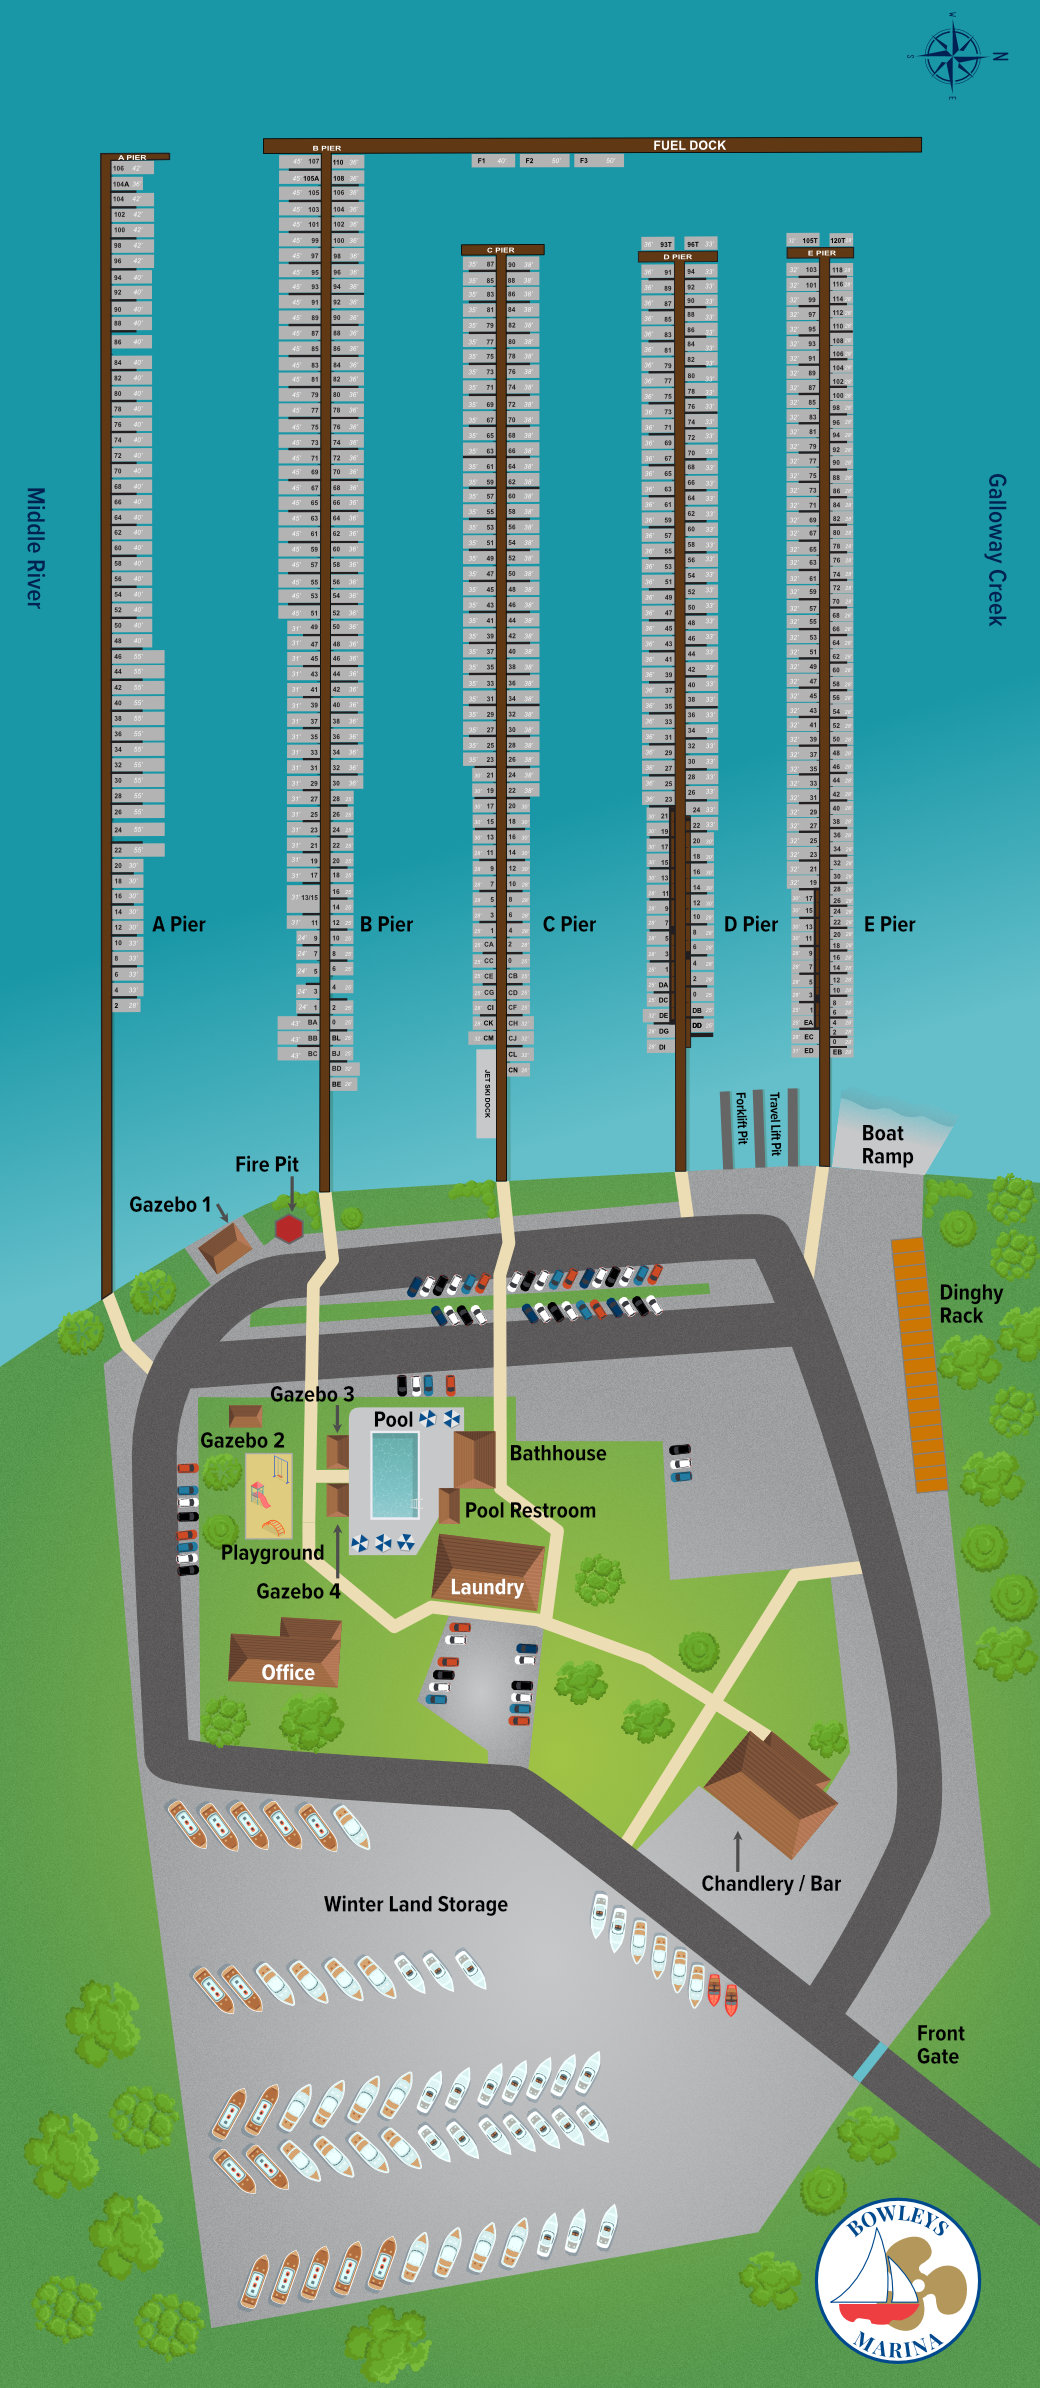 bowleys marina and facility map